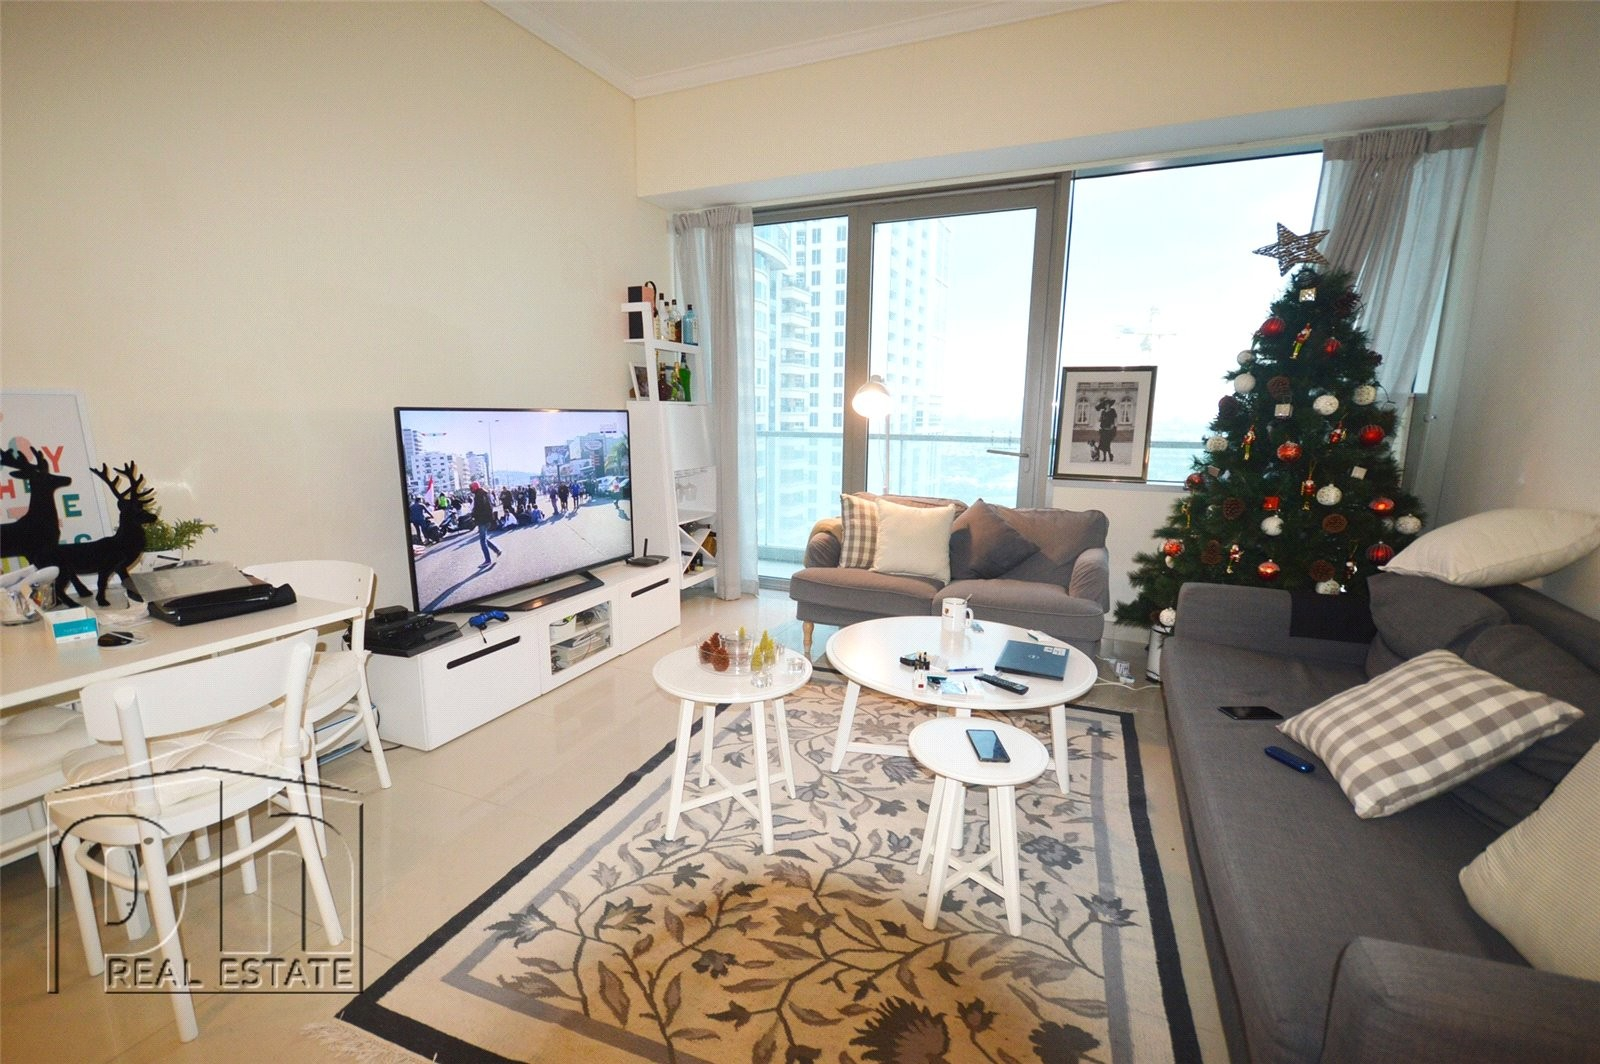 Apartment can be furnished or unfurnished